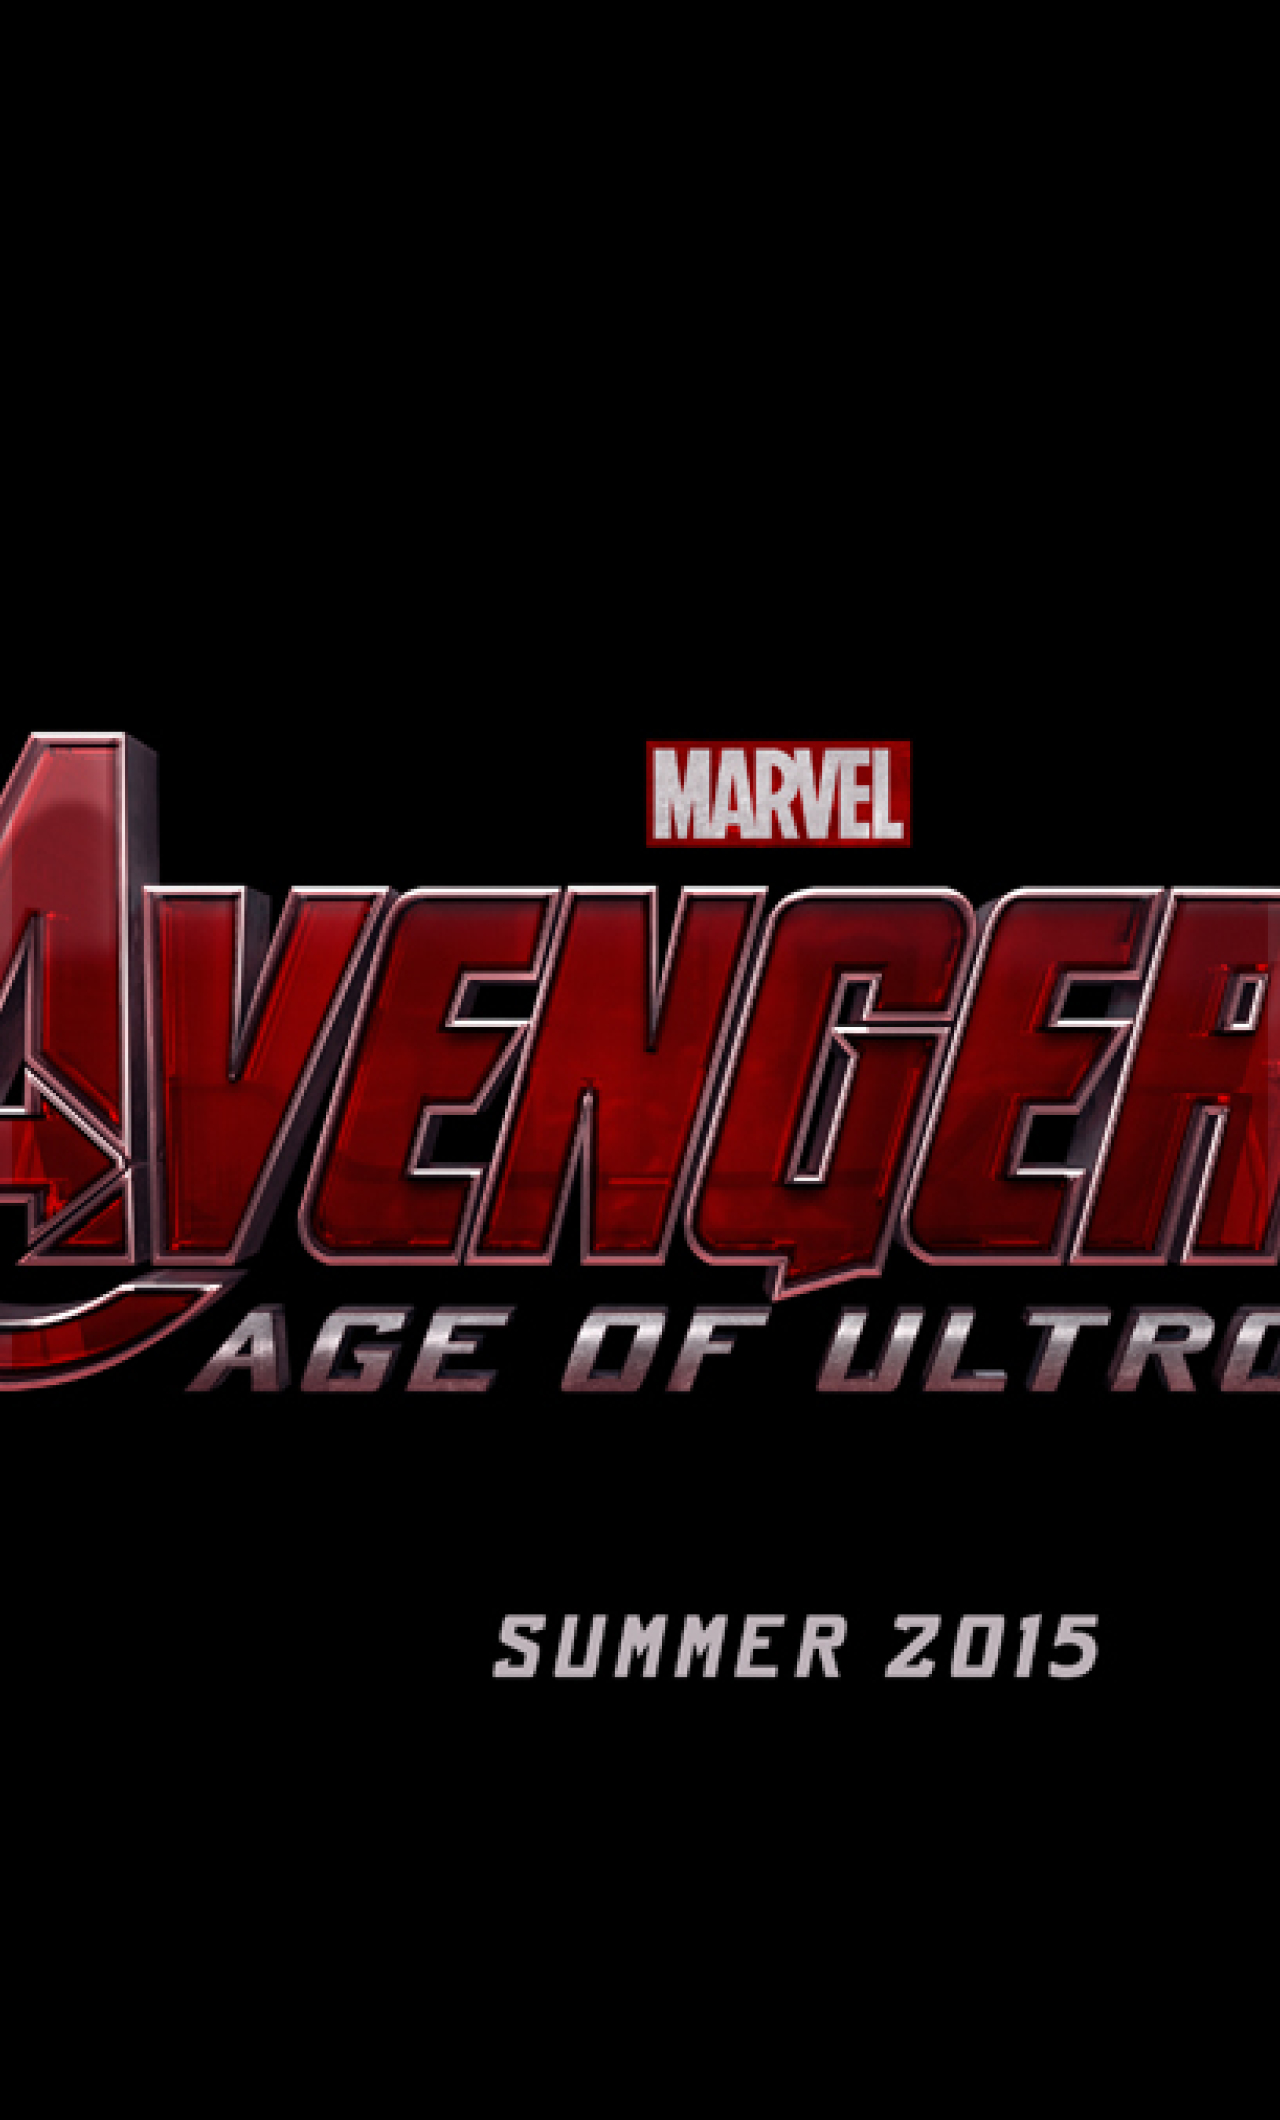 The Avengers 2 Age Of Ultron Logo HD Wallpaper